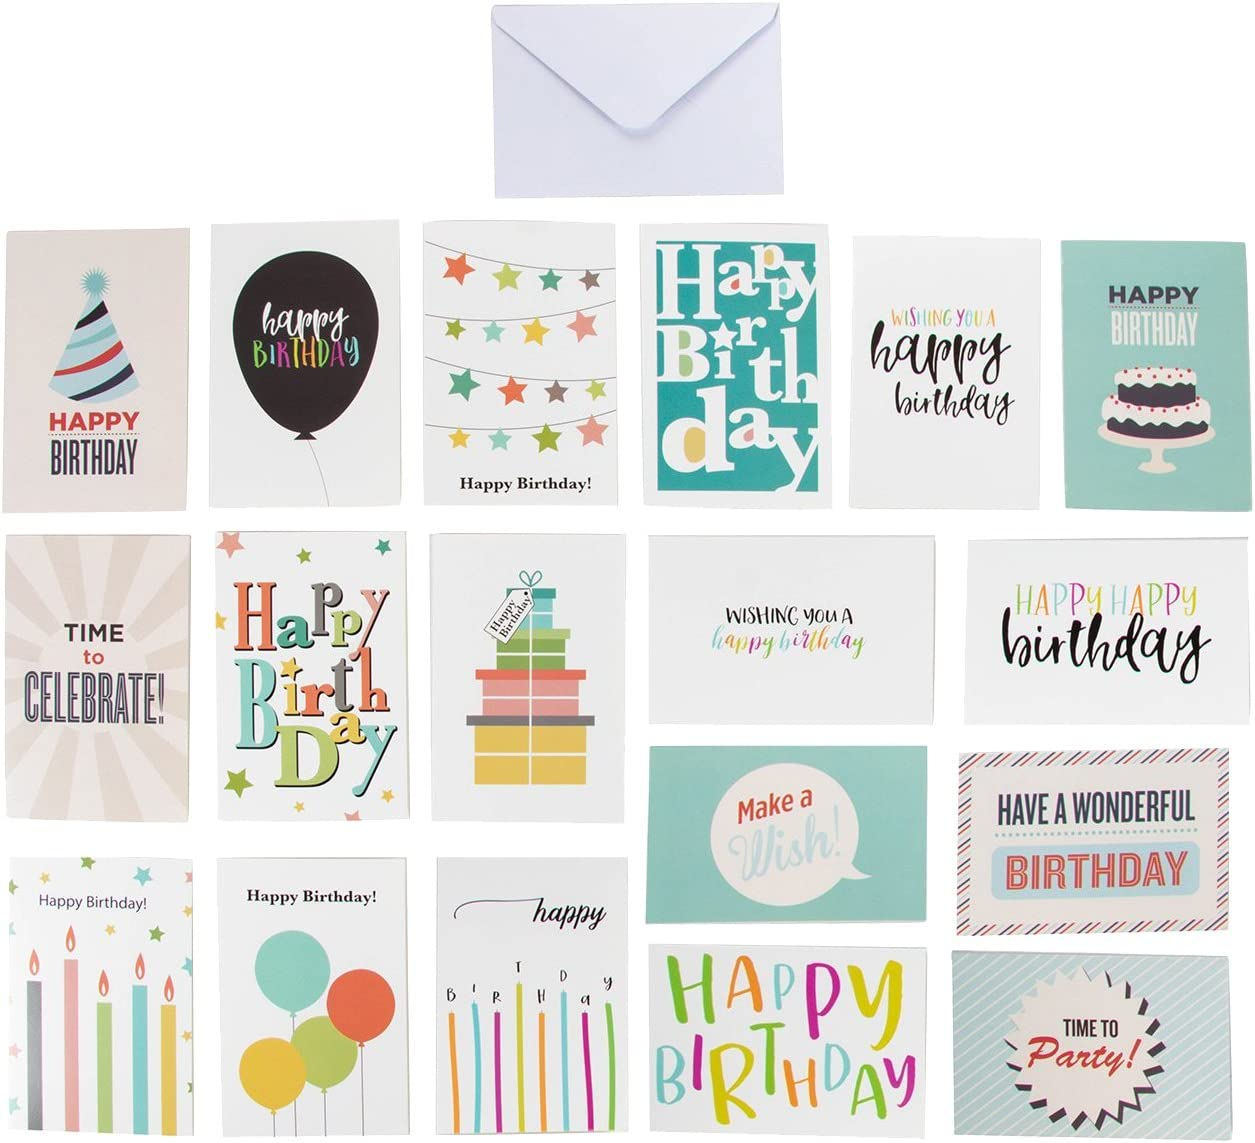 Best Paper Greetings 144 Happy Birthday Cards Assortment with Envelopes, 18 Colorful Designs for Men Women Kids Parents Employees, Bulk Box Set Variety Pack, 4 x 6 Inches